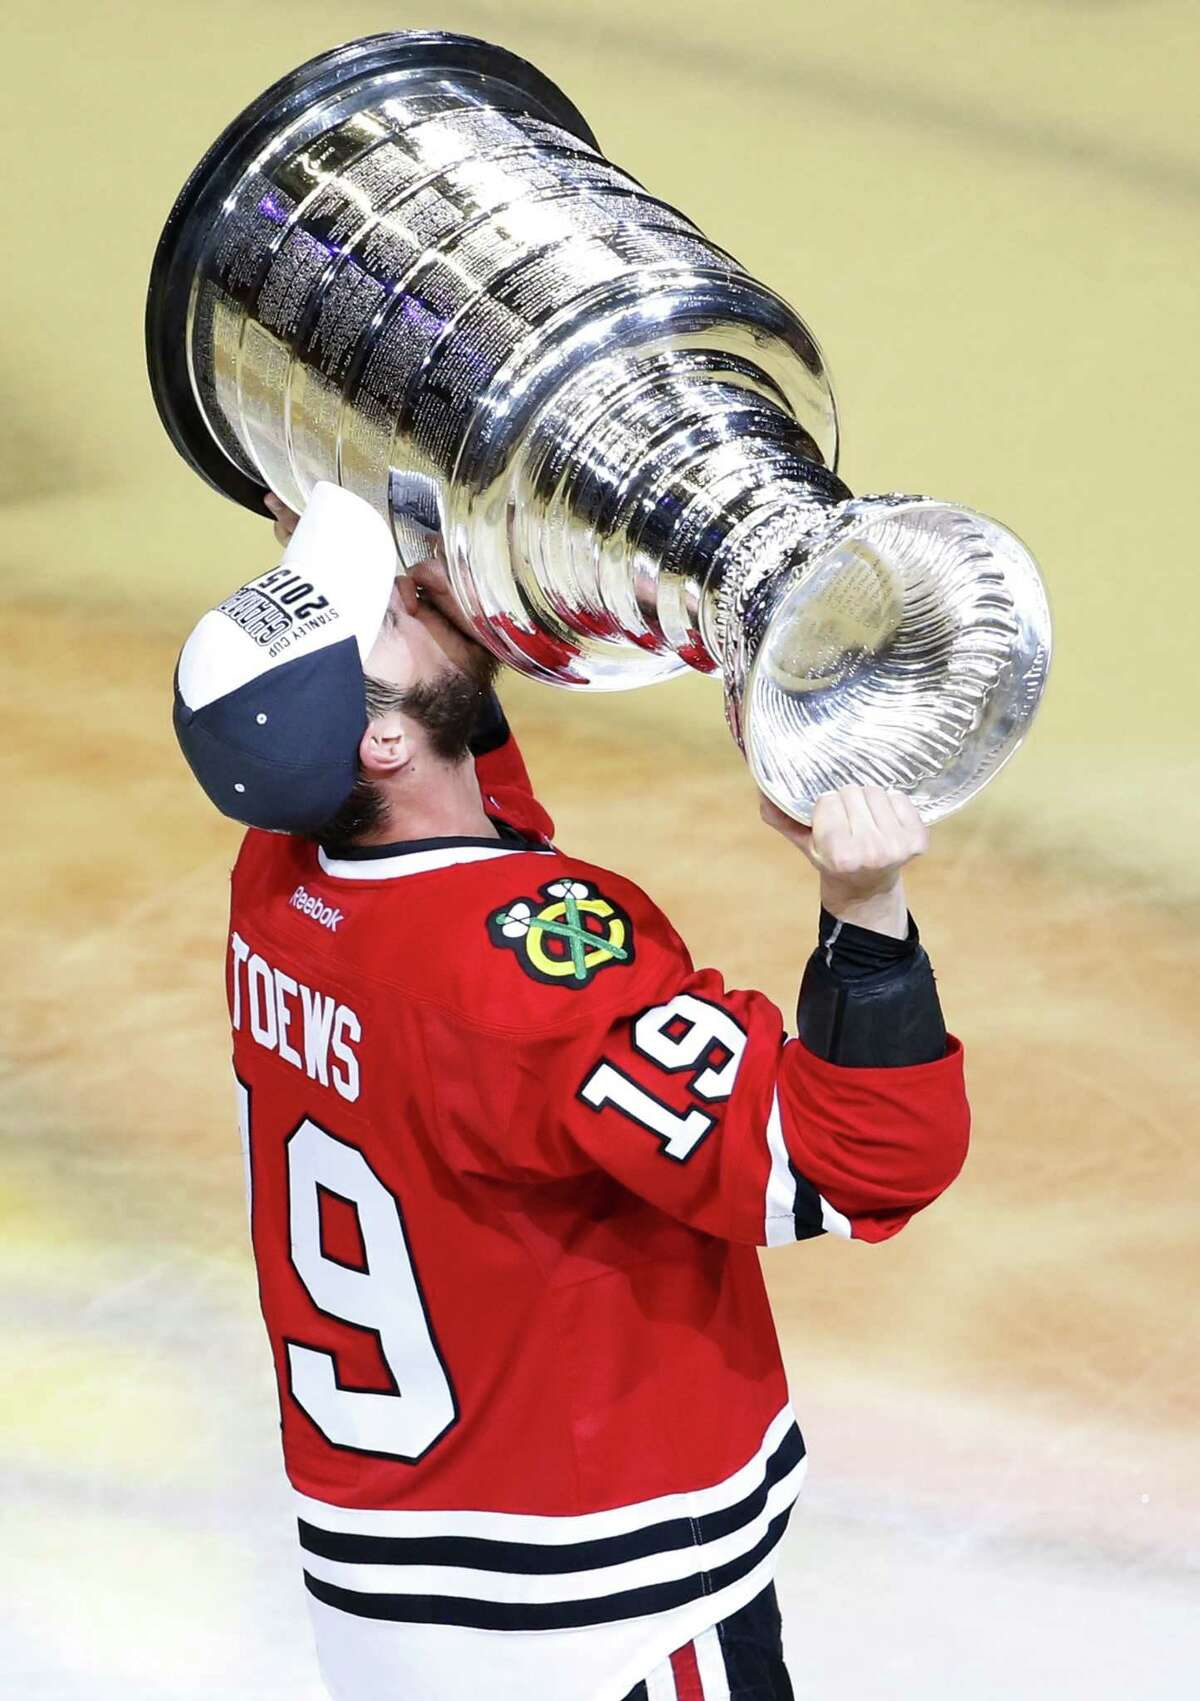 The Blackhawks' Jonathan Toews kisses the Stanley Cup trophy after defeating the Lightning in Game 6 of the Stanley Cup finals on Monday.